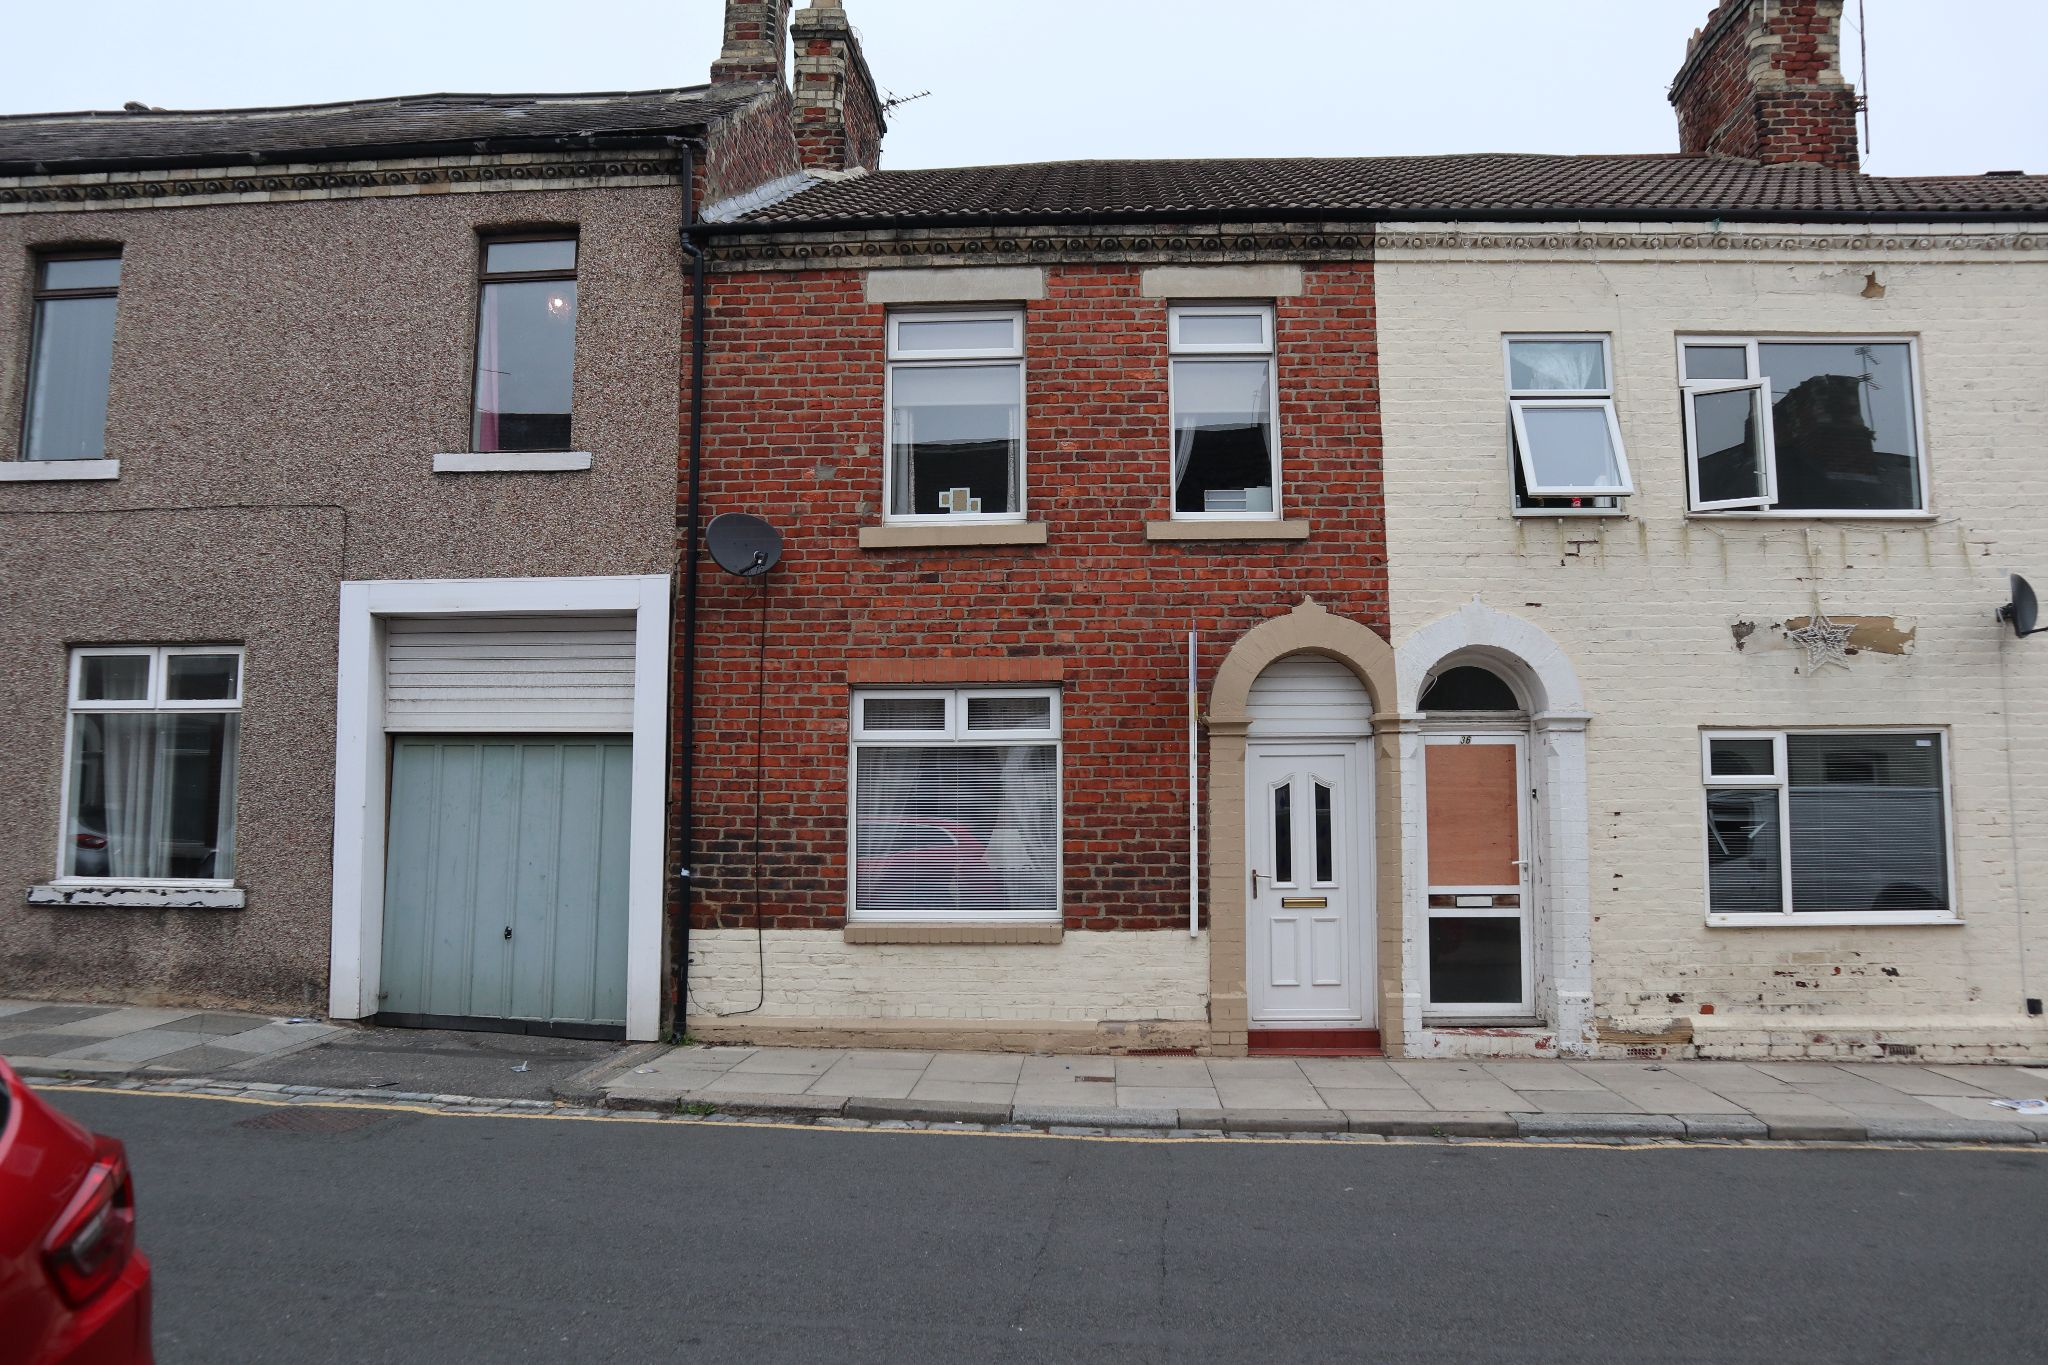 3 bedroom mid terraced house Available in Durham - Photograph 1.